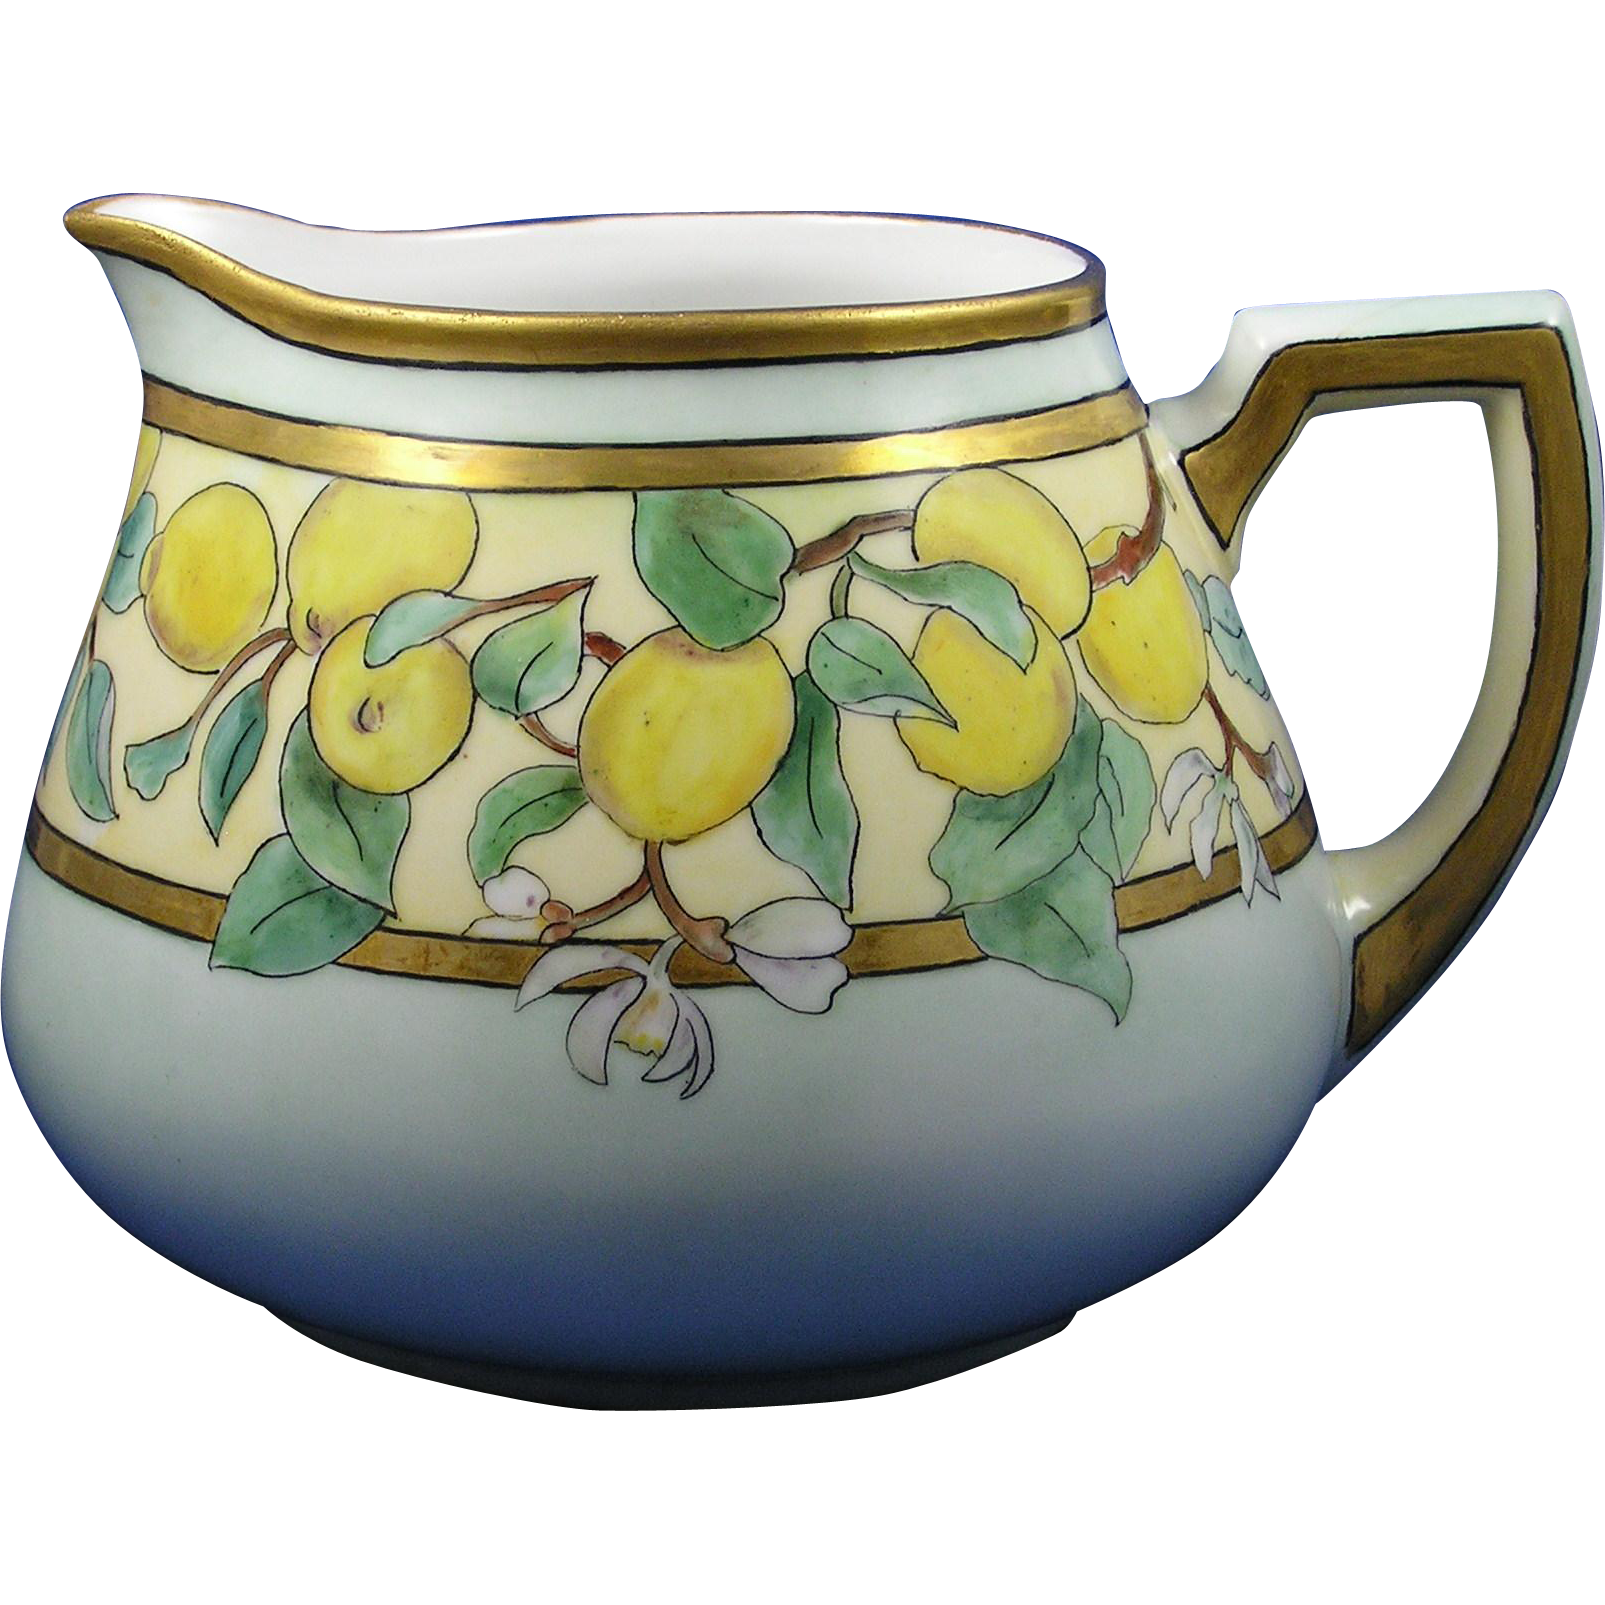 Zeh Scherzer & Co. (ZS&Co.) Bavaria Arts & Crafts Lemon Motif Pitcher (c.1880-1920)